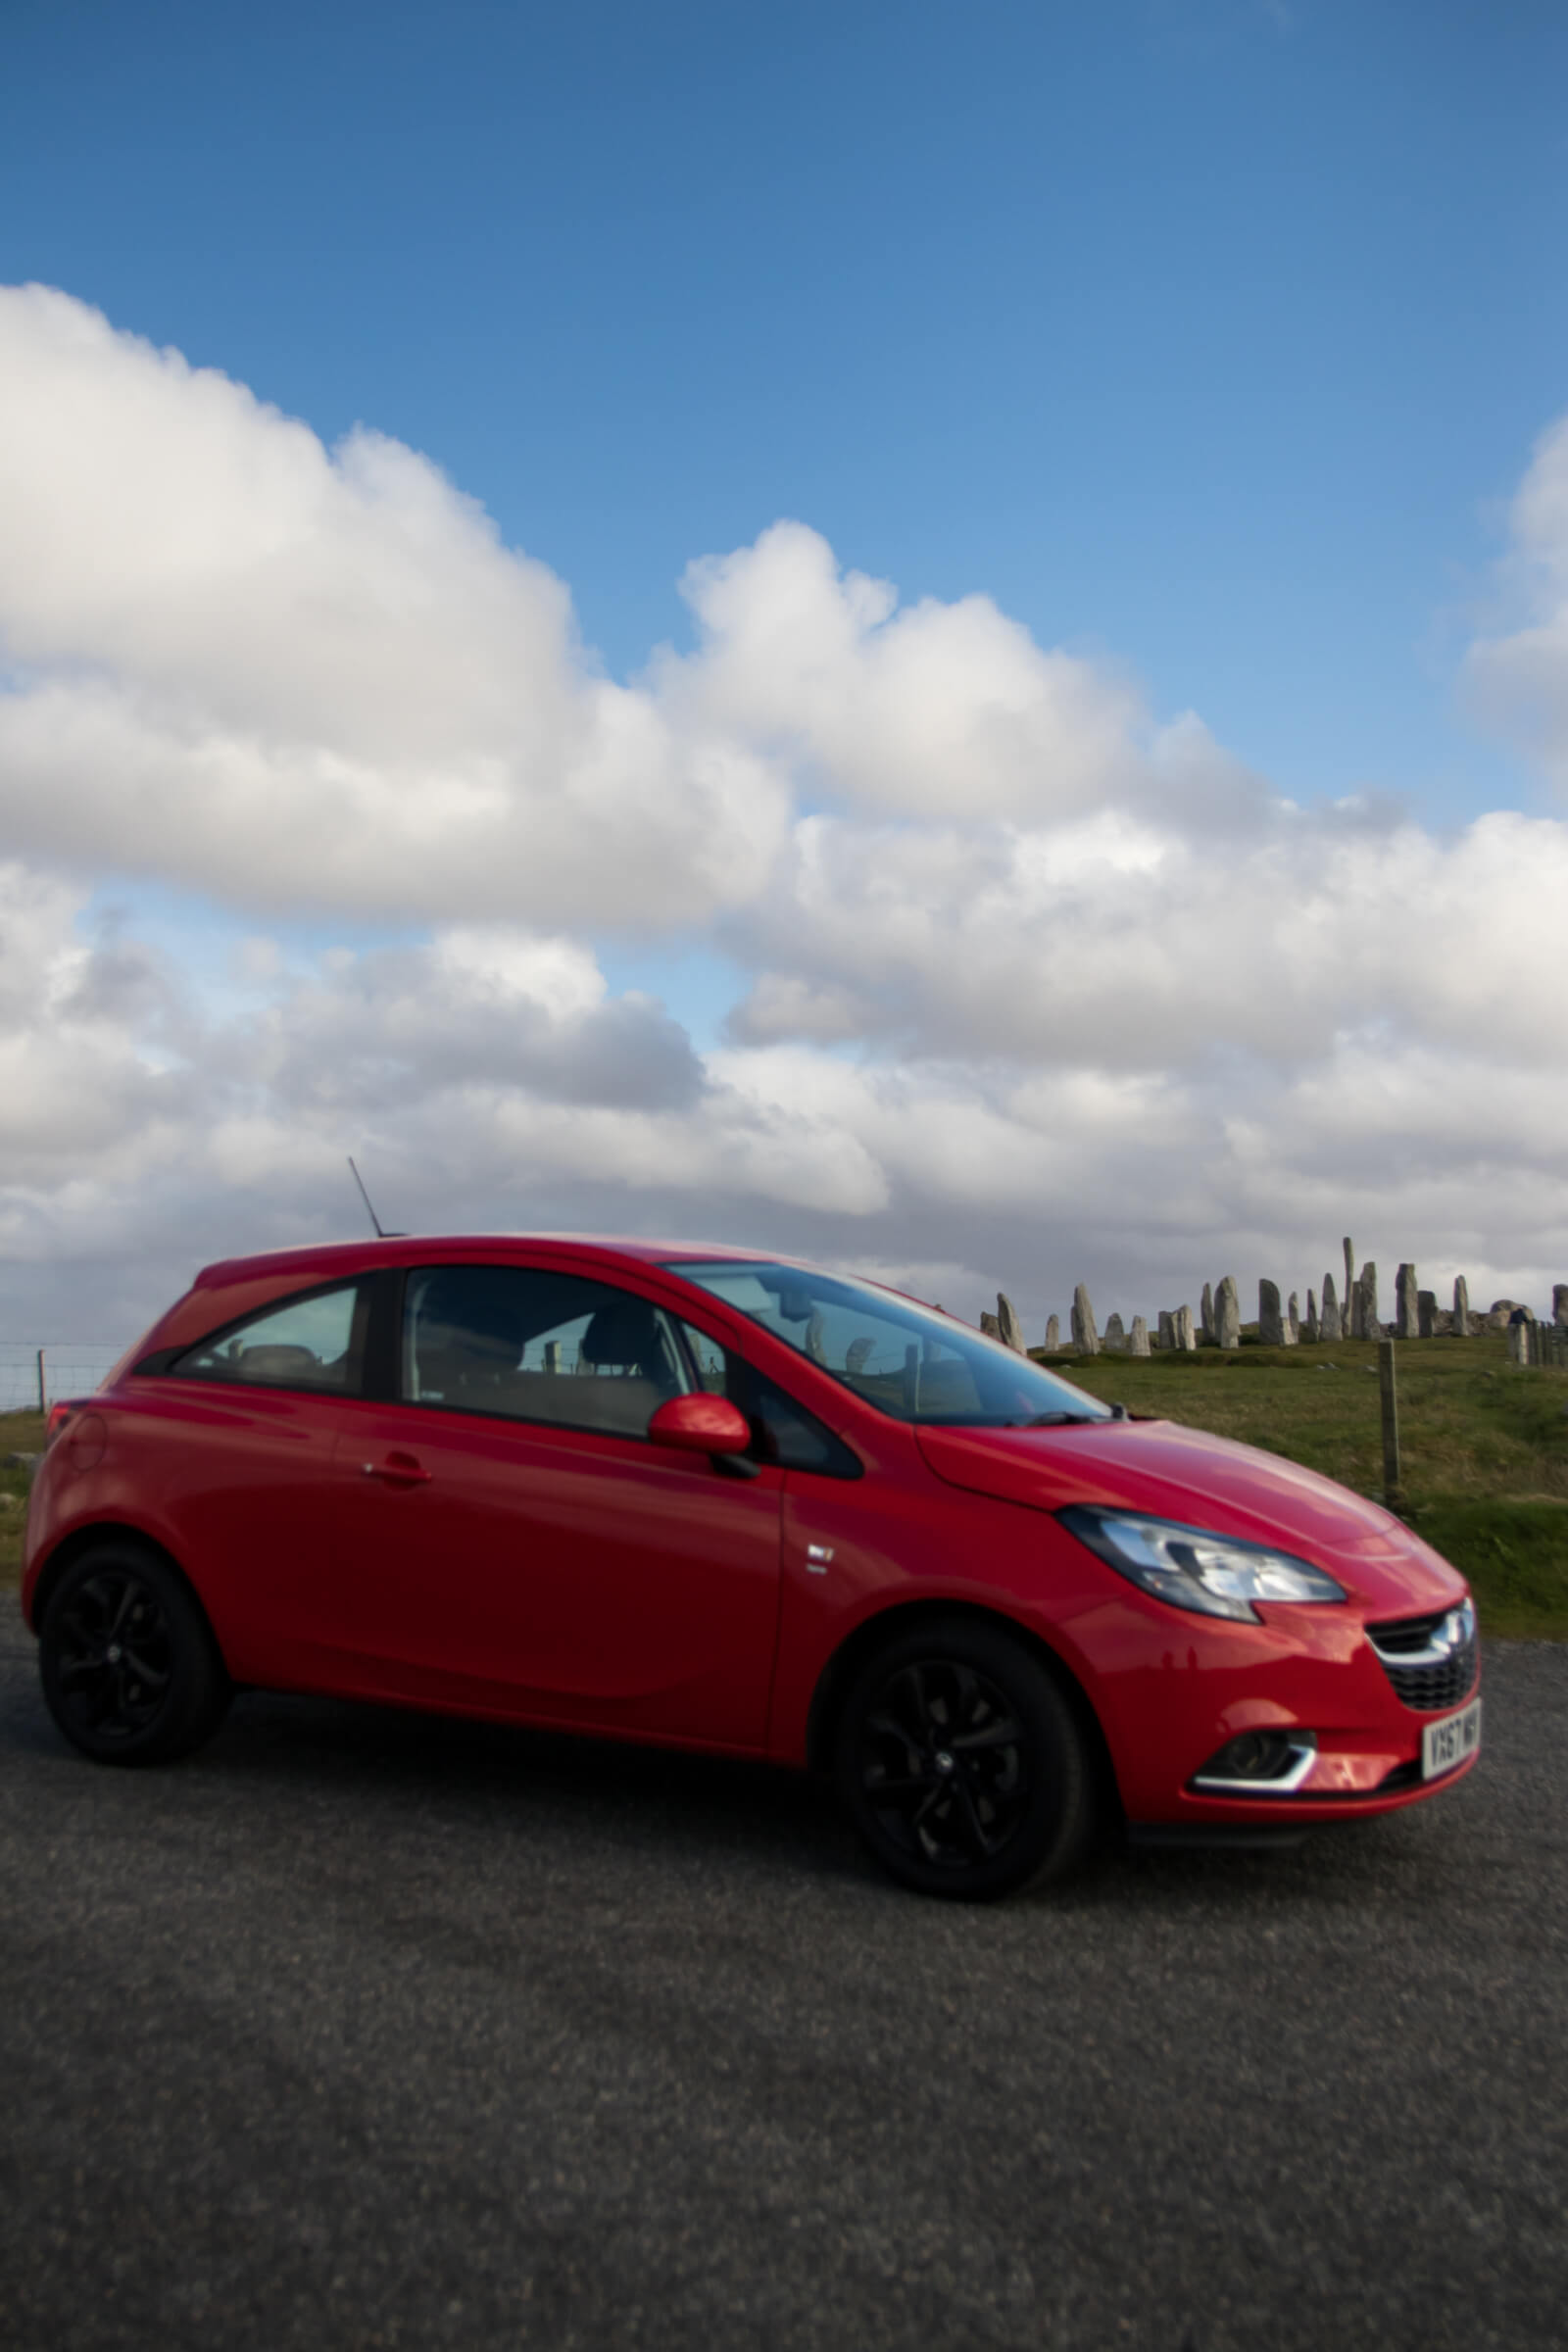 Red Vauxhall Corsa and Callanish Stones